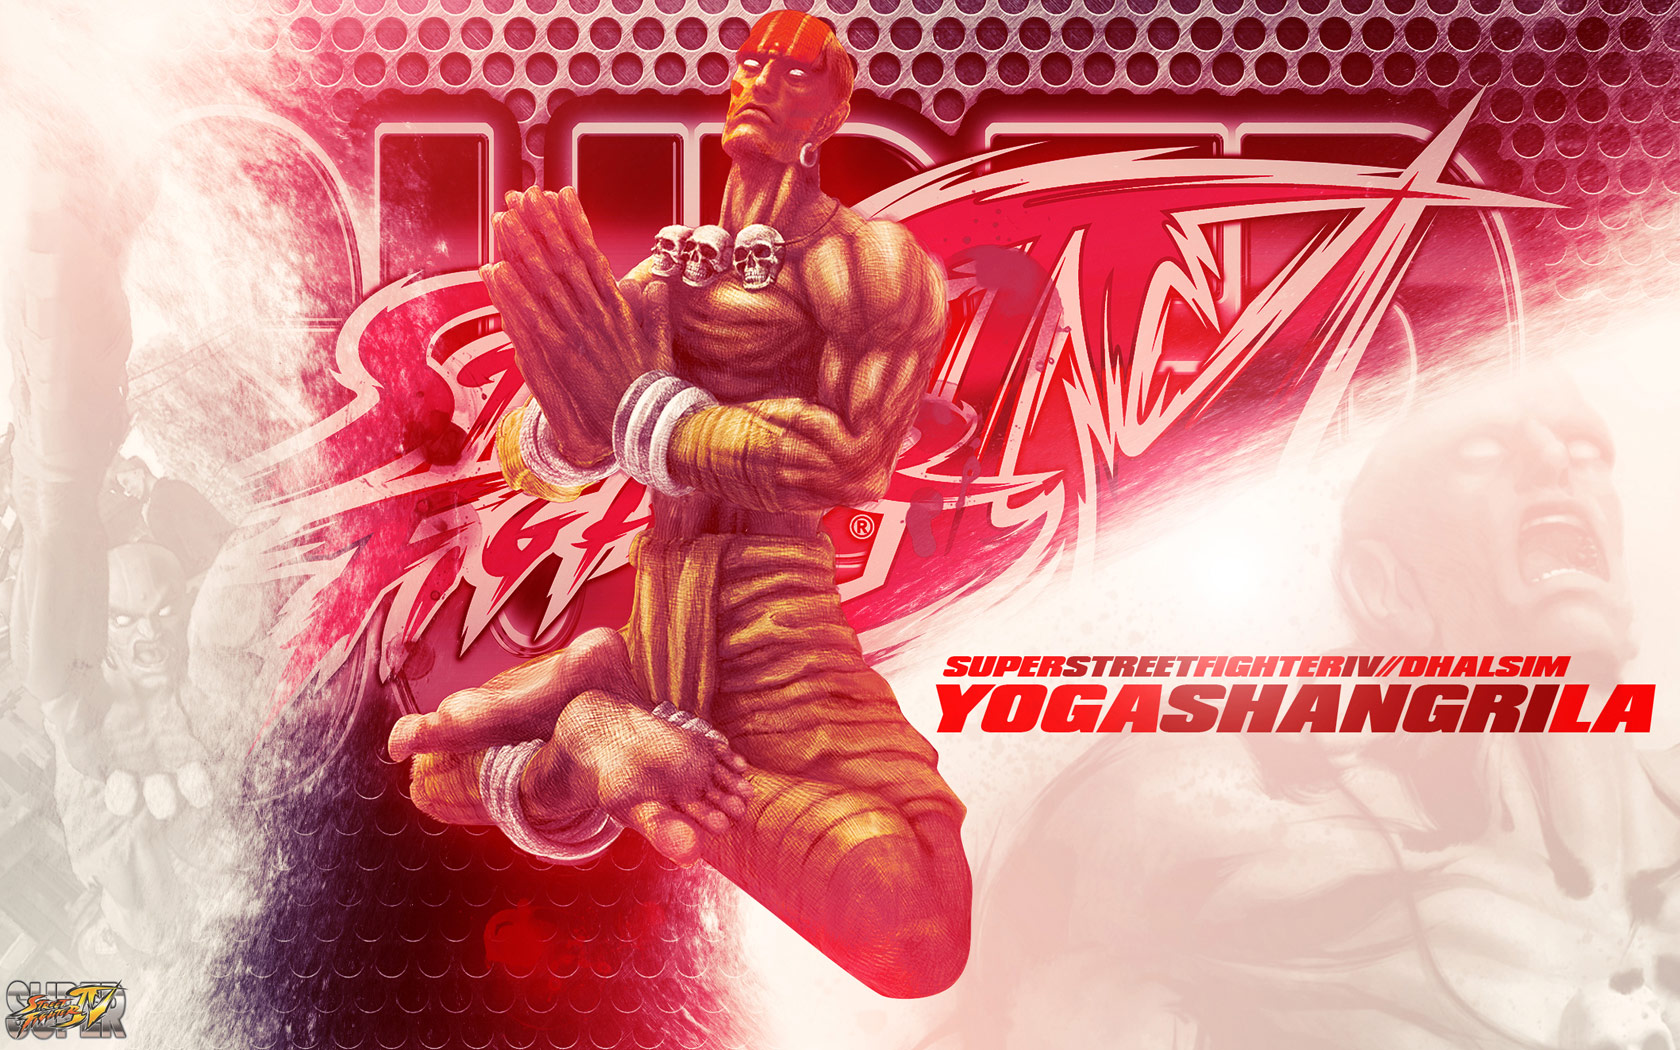 Dhalsim Super Street Fighter 4 wallpaper by BossLogic